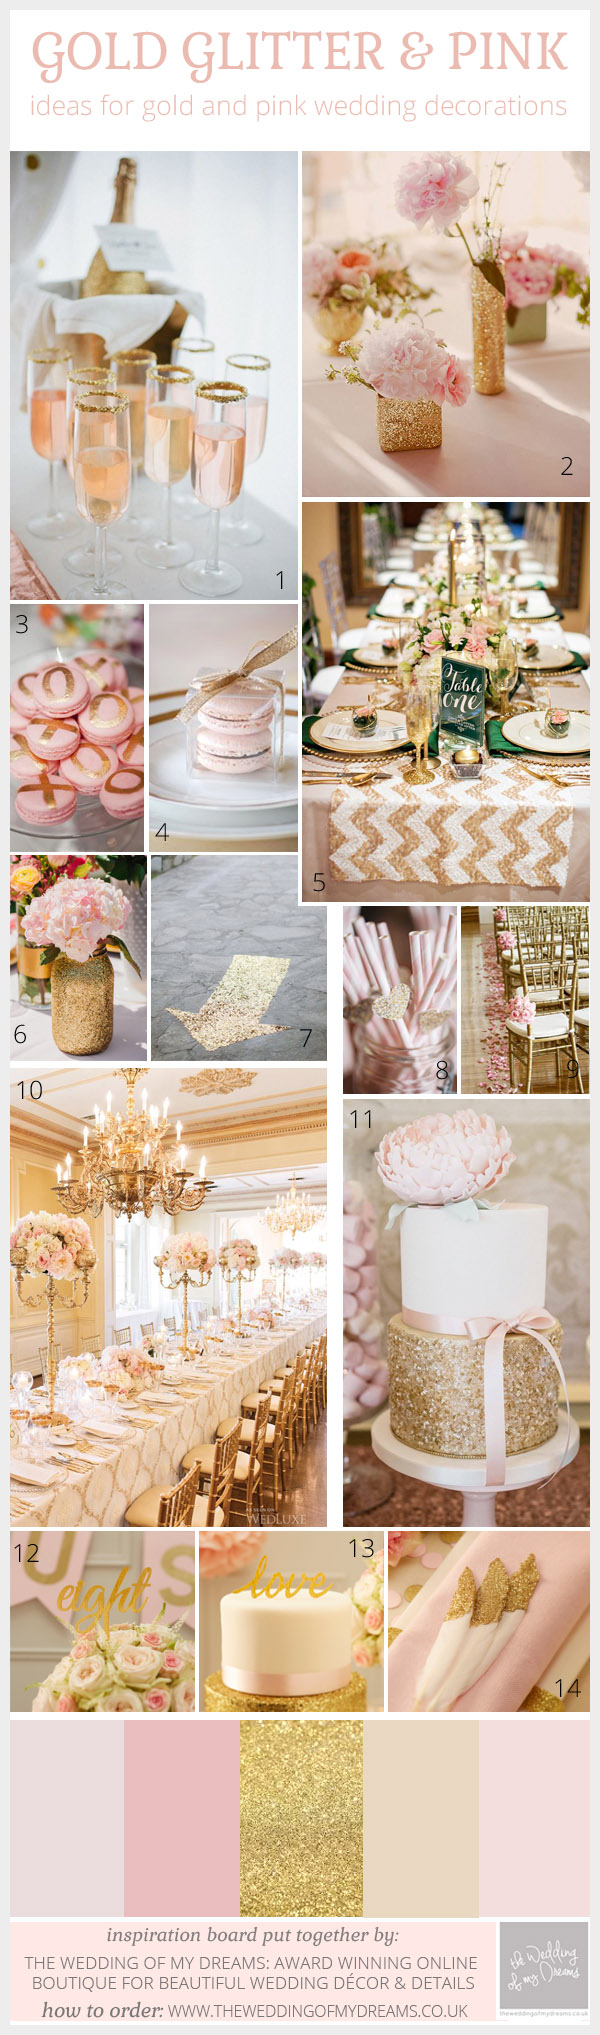 pink and gold glitter wedding inspiration and decorations